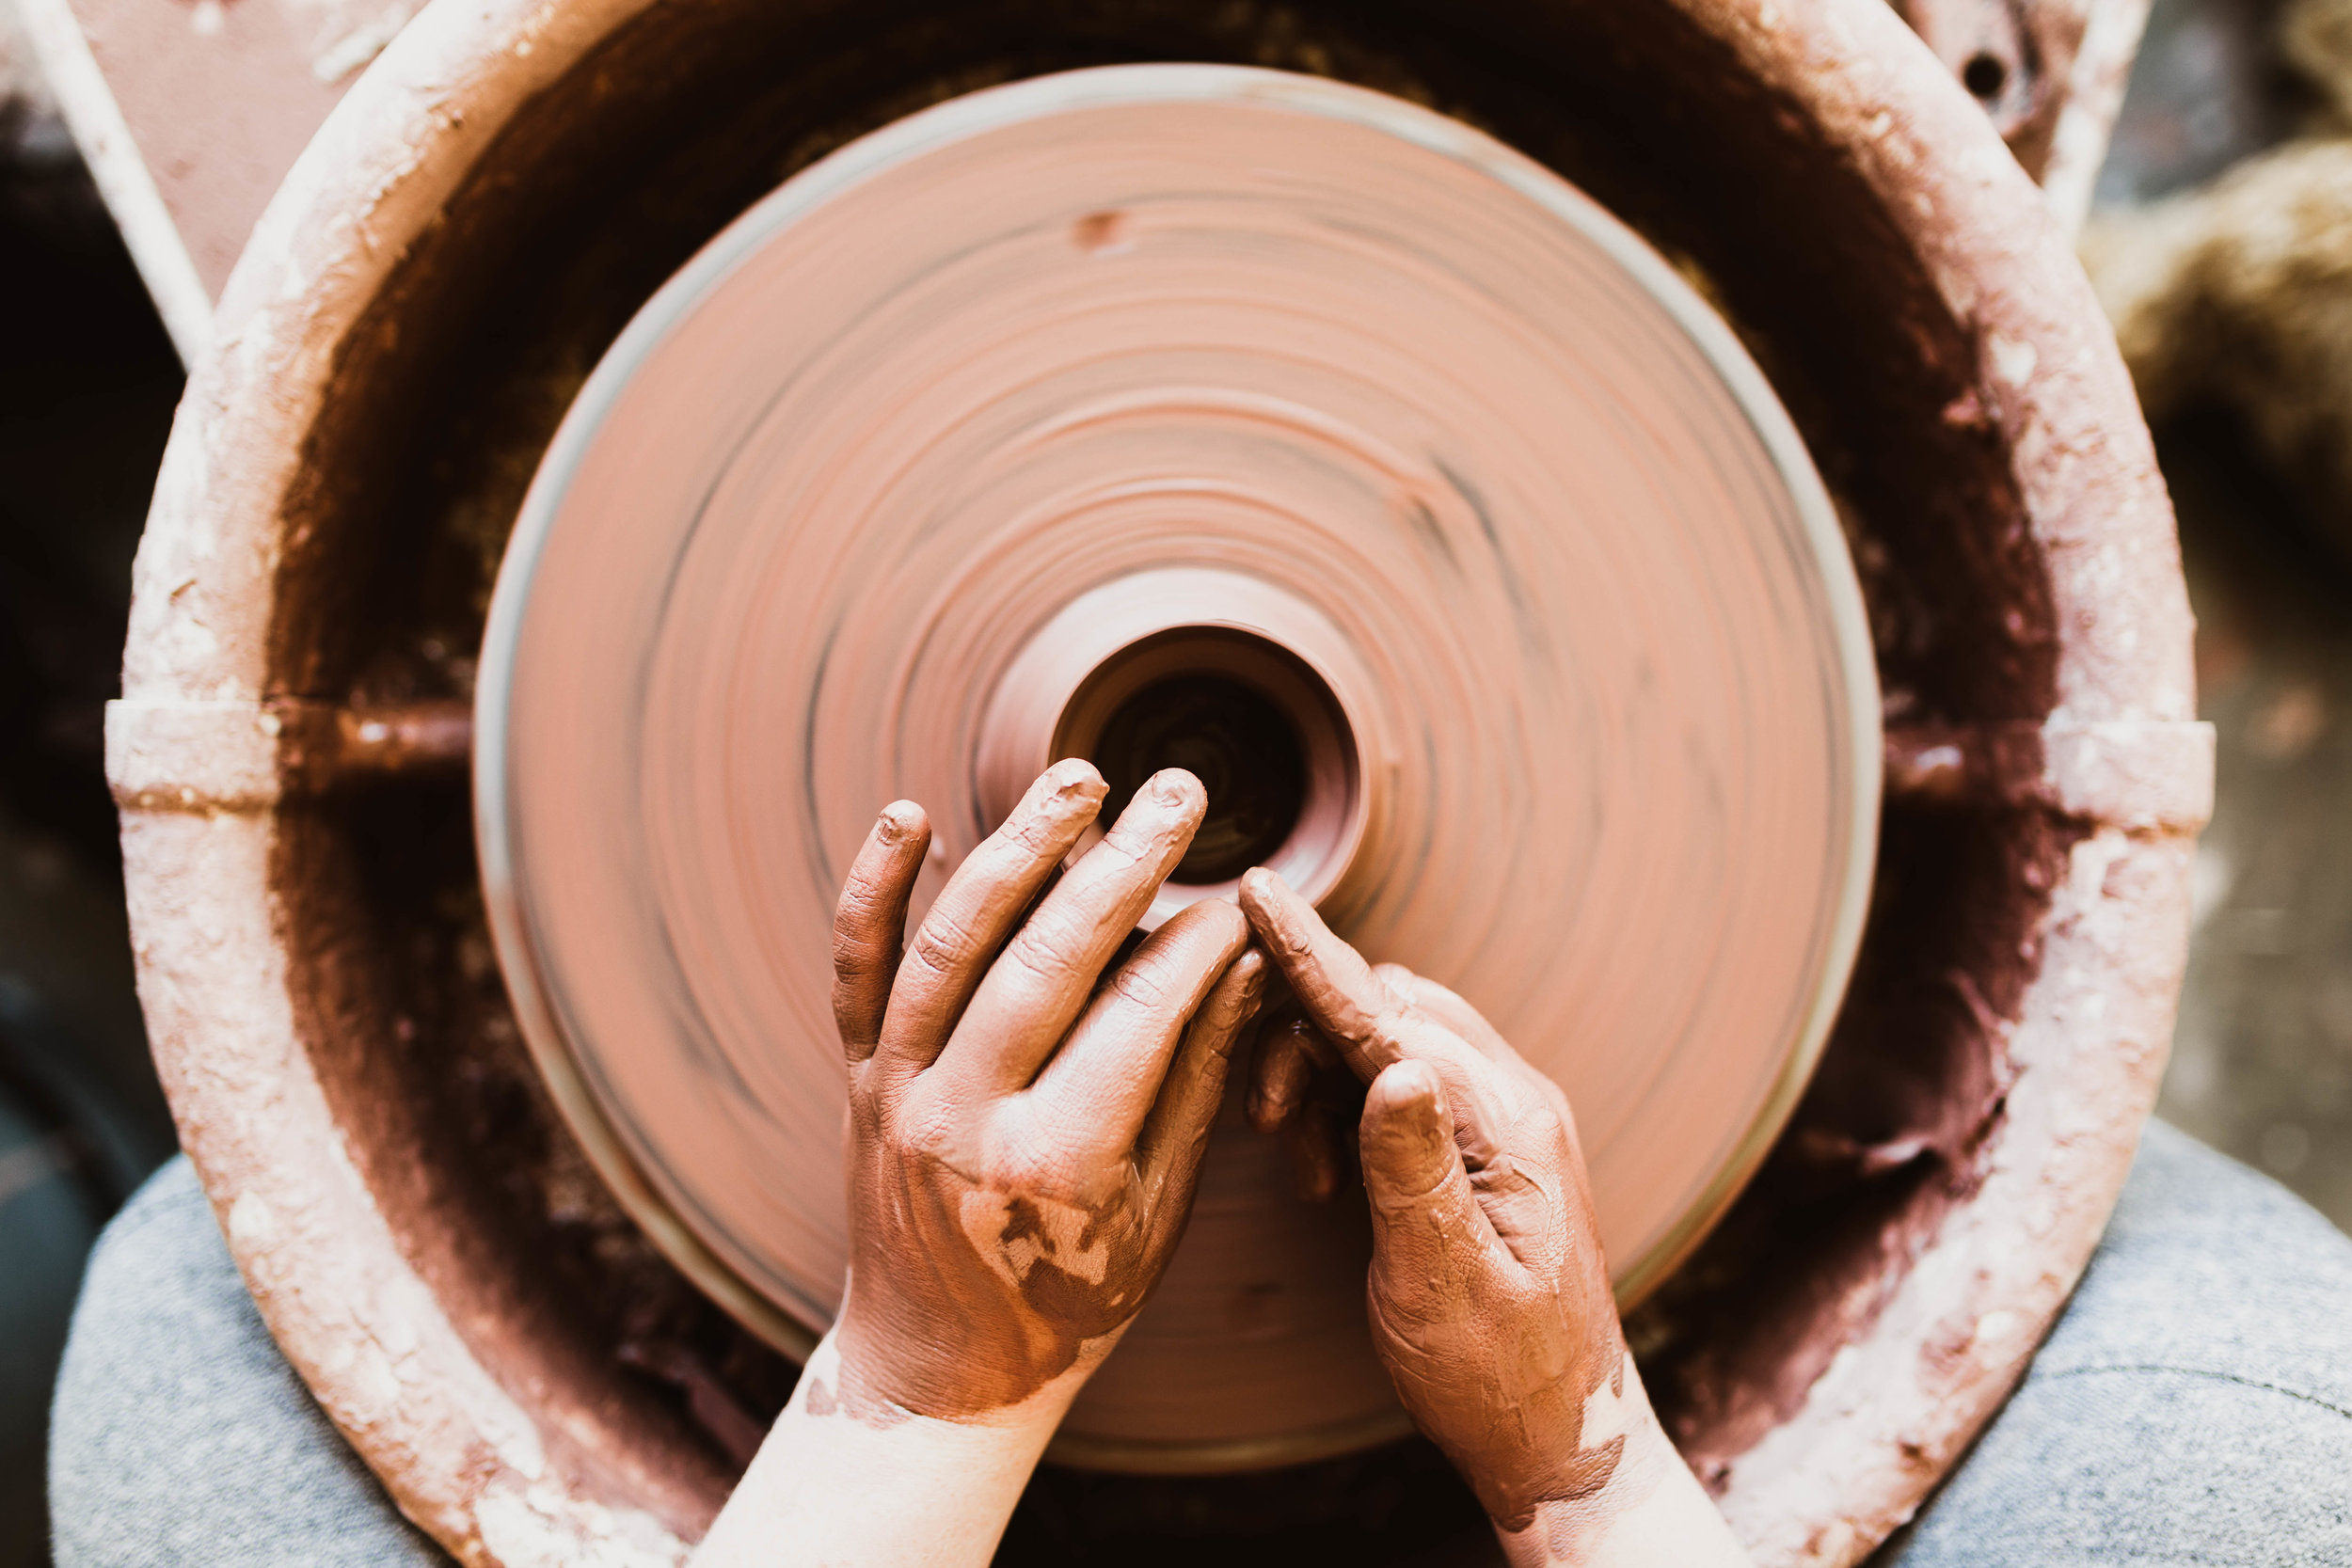 """A person's hands crafting pottery on a spinning wheel"" by  Jared Sluyter  on  Unsplash"